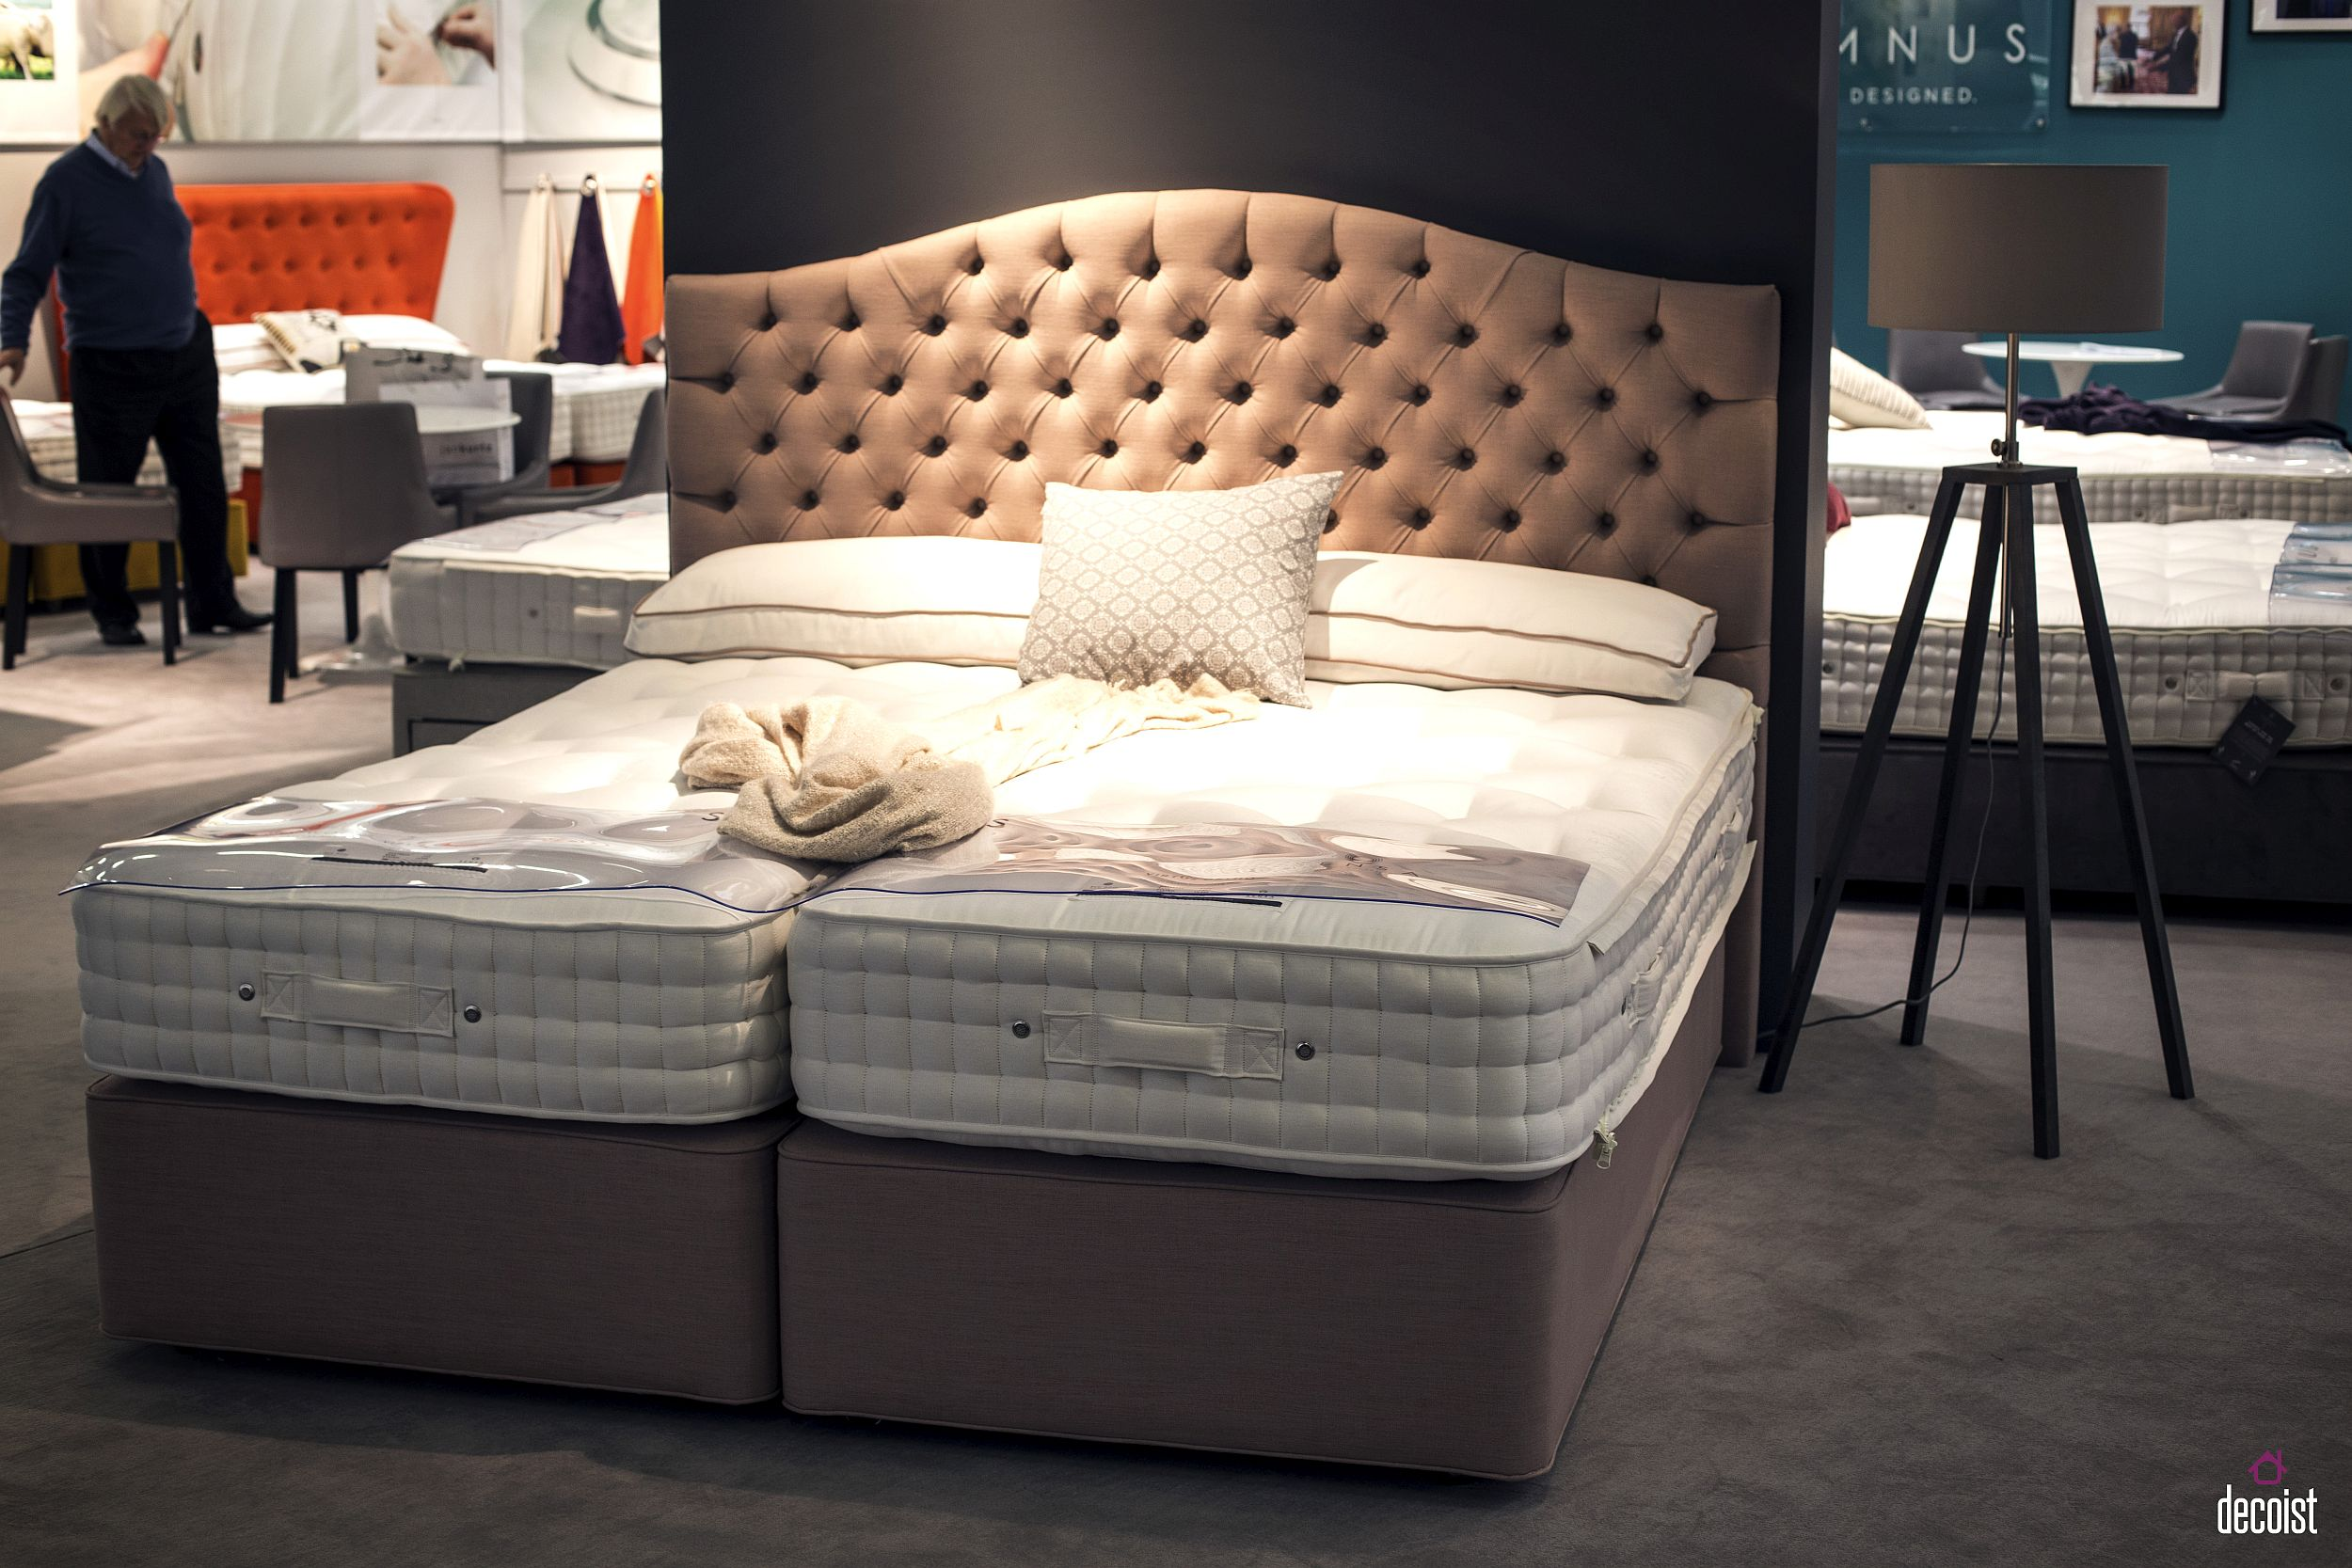 Subtle-curves-of-the-tufted-headboard-grad-your-attention-instantly